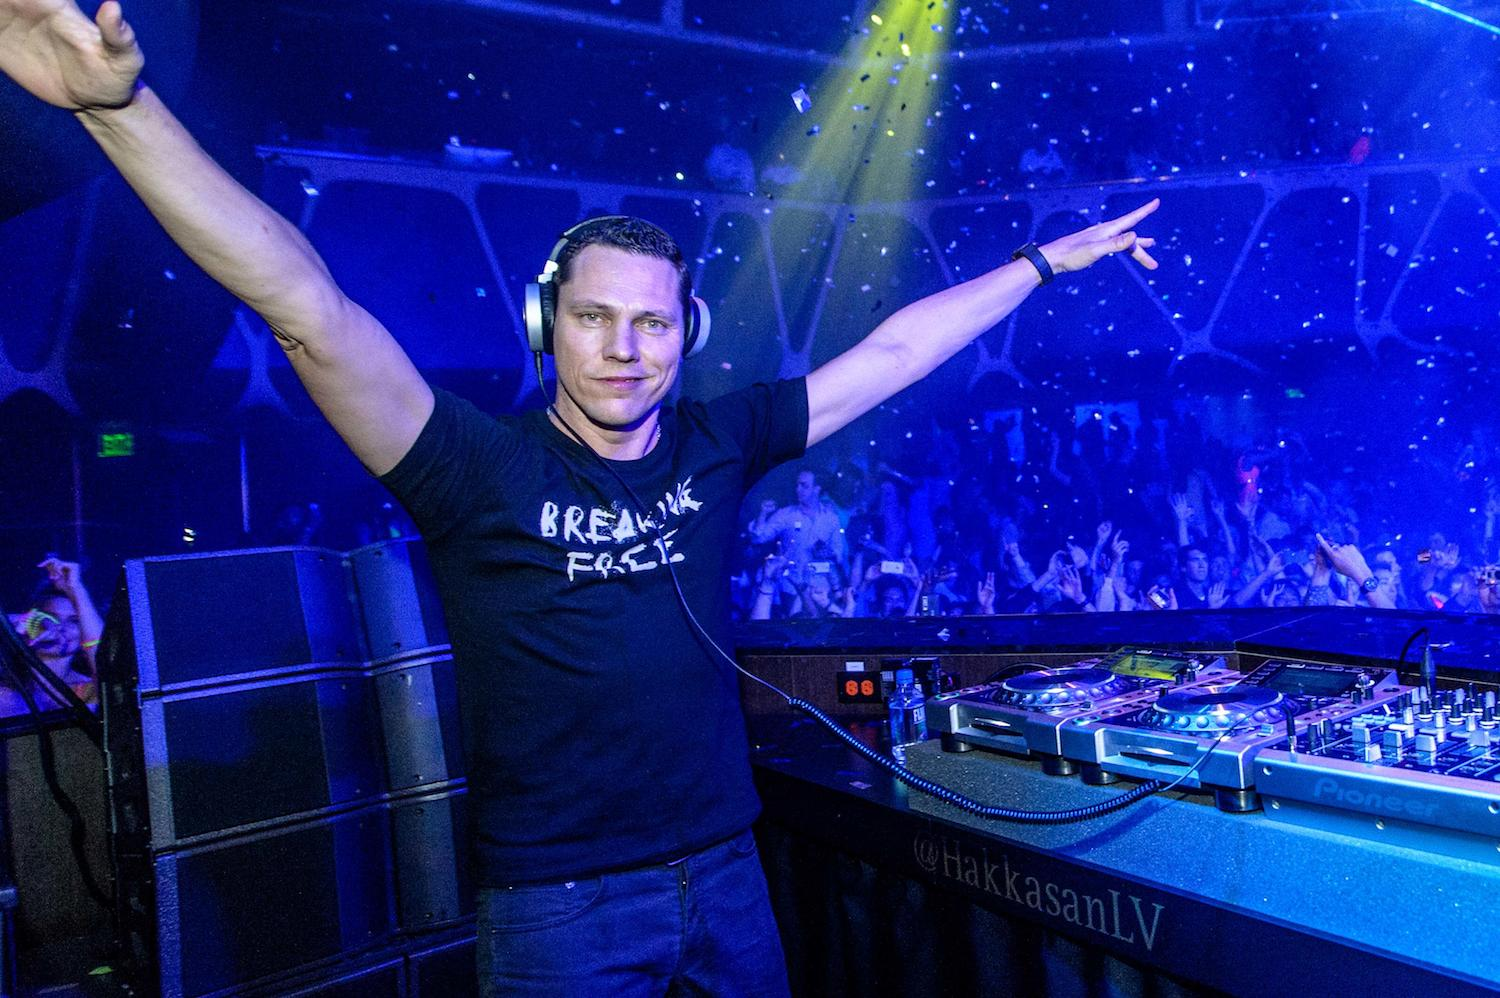 Dj Tiesto net worth! – How rich is Dj Tiesto?